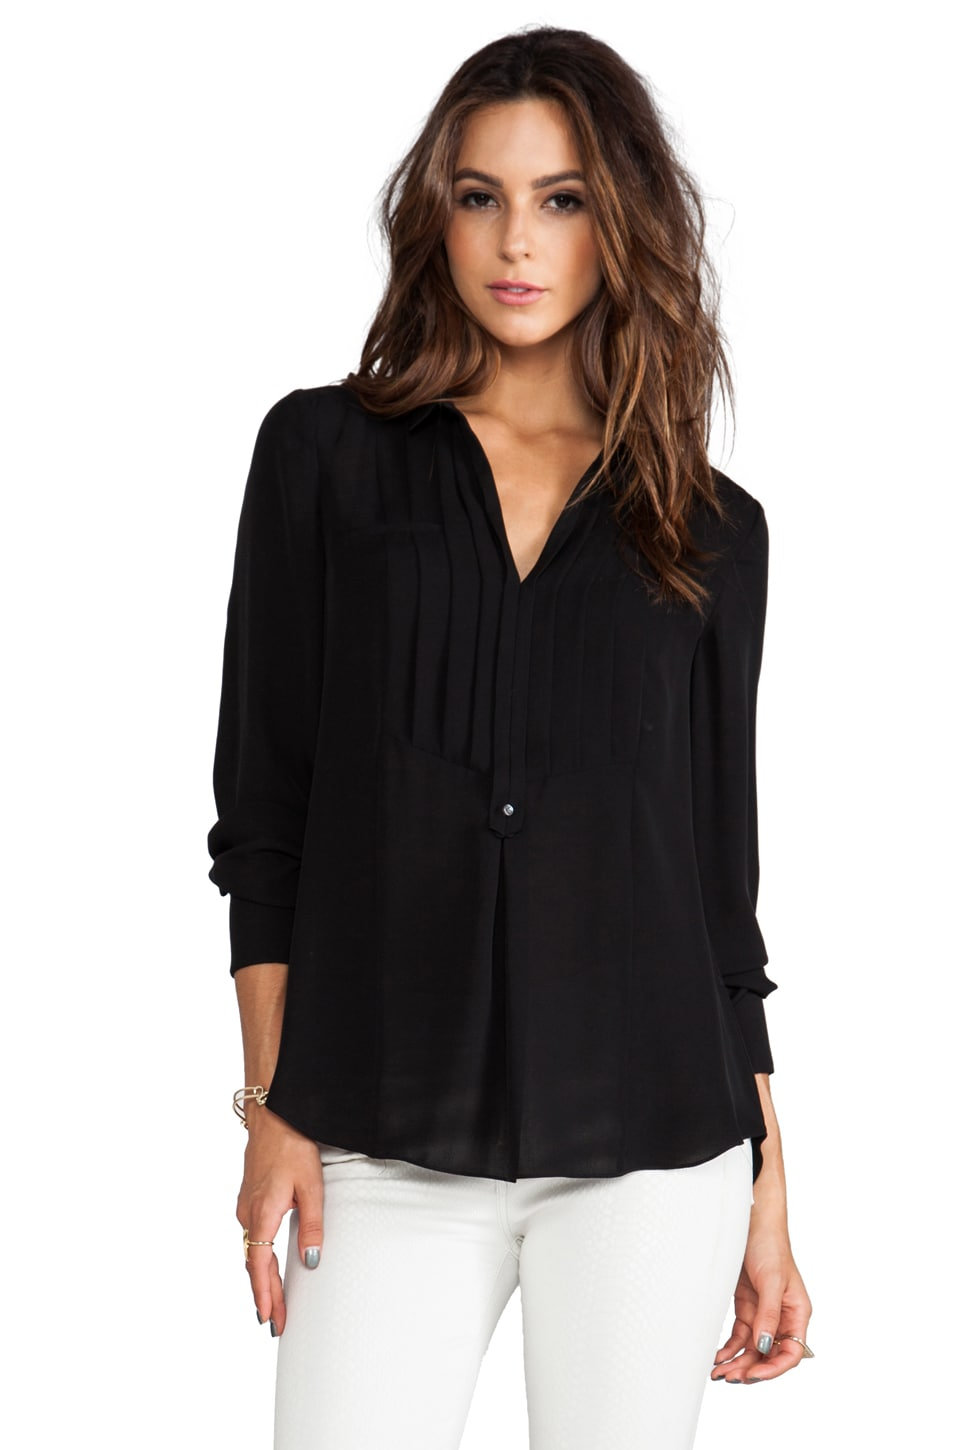 Halston Heritage Silk Tuxedo Shirt in Black